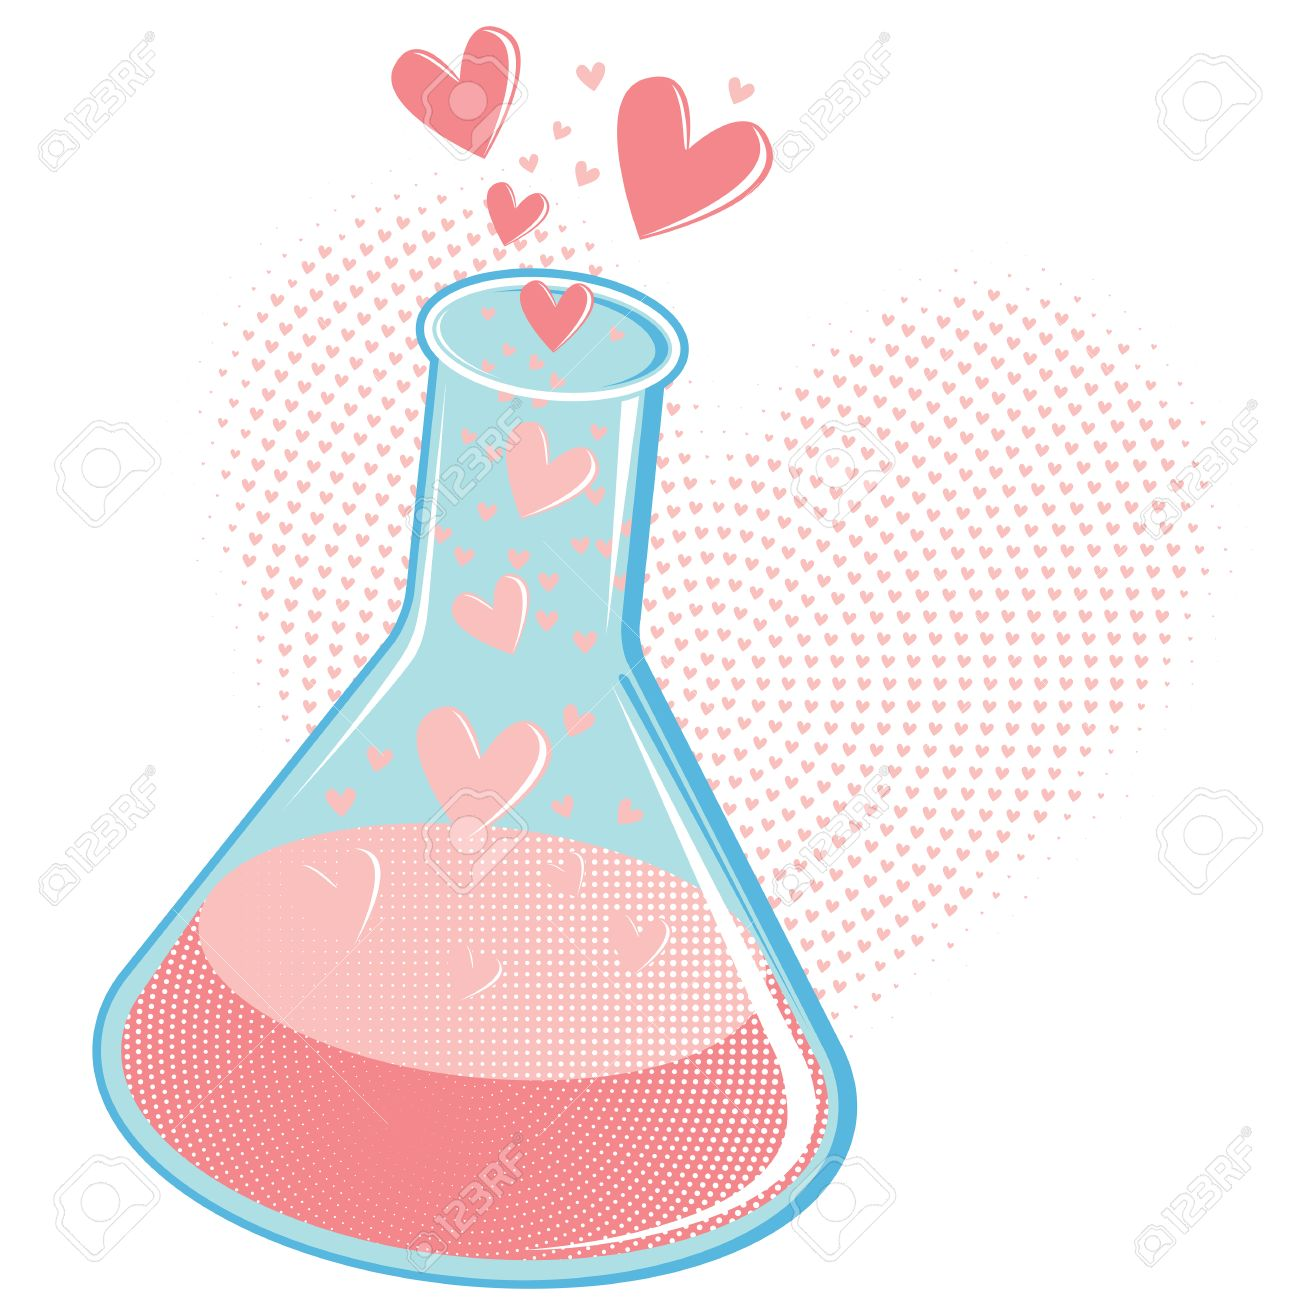 Chemistry of Love Concept or Love Potion Stock Vector - 8393289